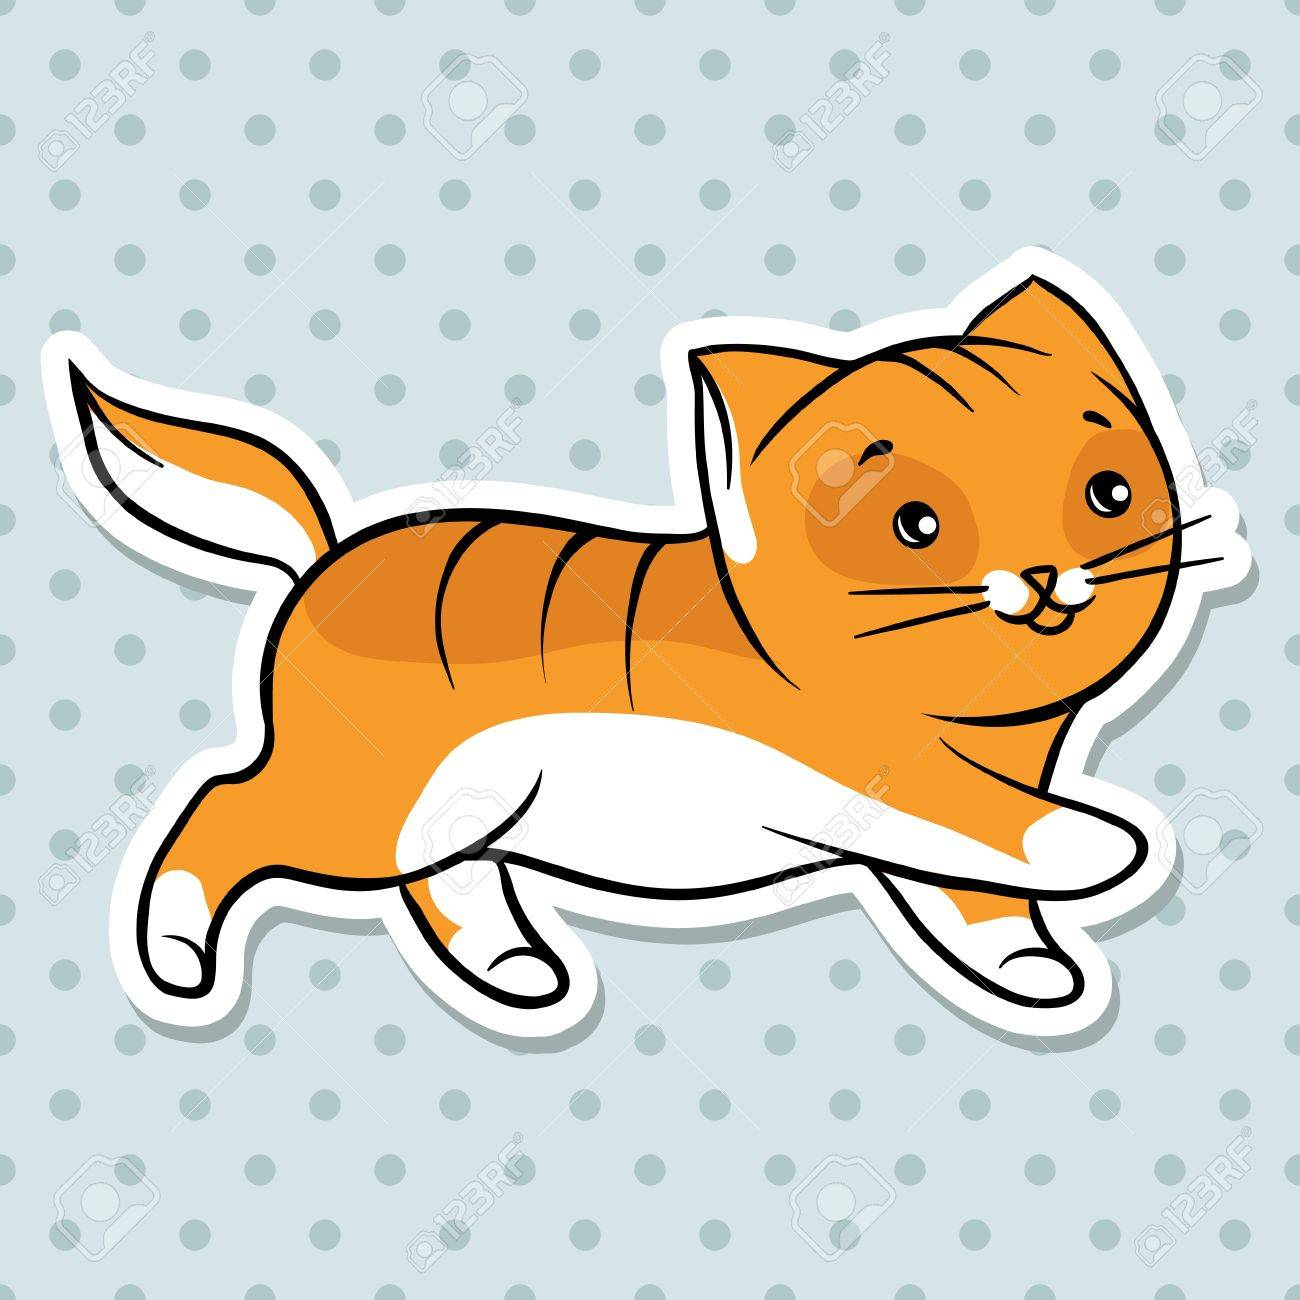 Red Cute Funny Cat Run Vector Illustration Royalty Free Cliparts Vectors And Stock Illustration Image 13998977